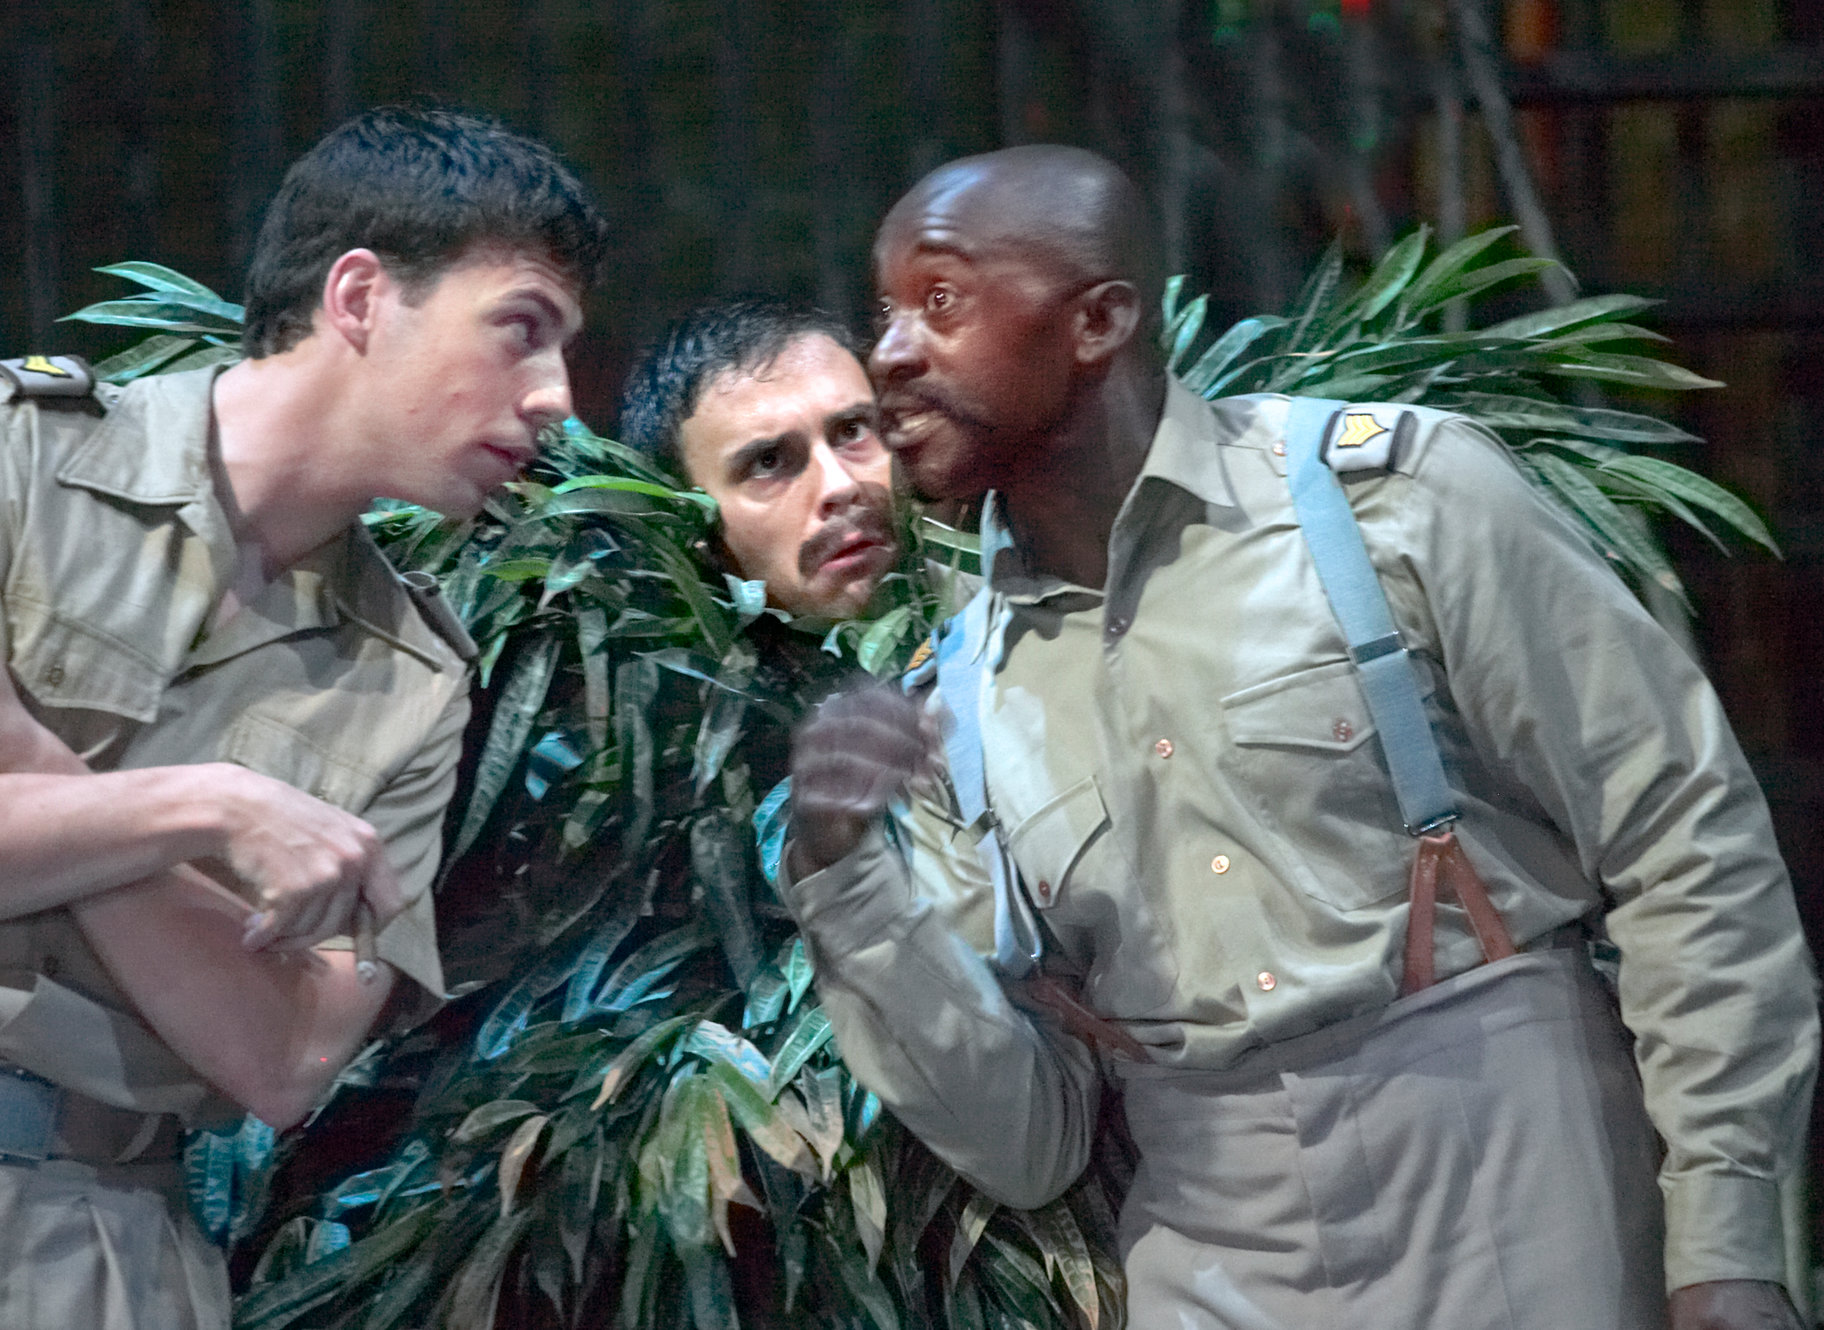 Two men talk in front of a man disguised as a bush.